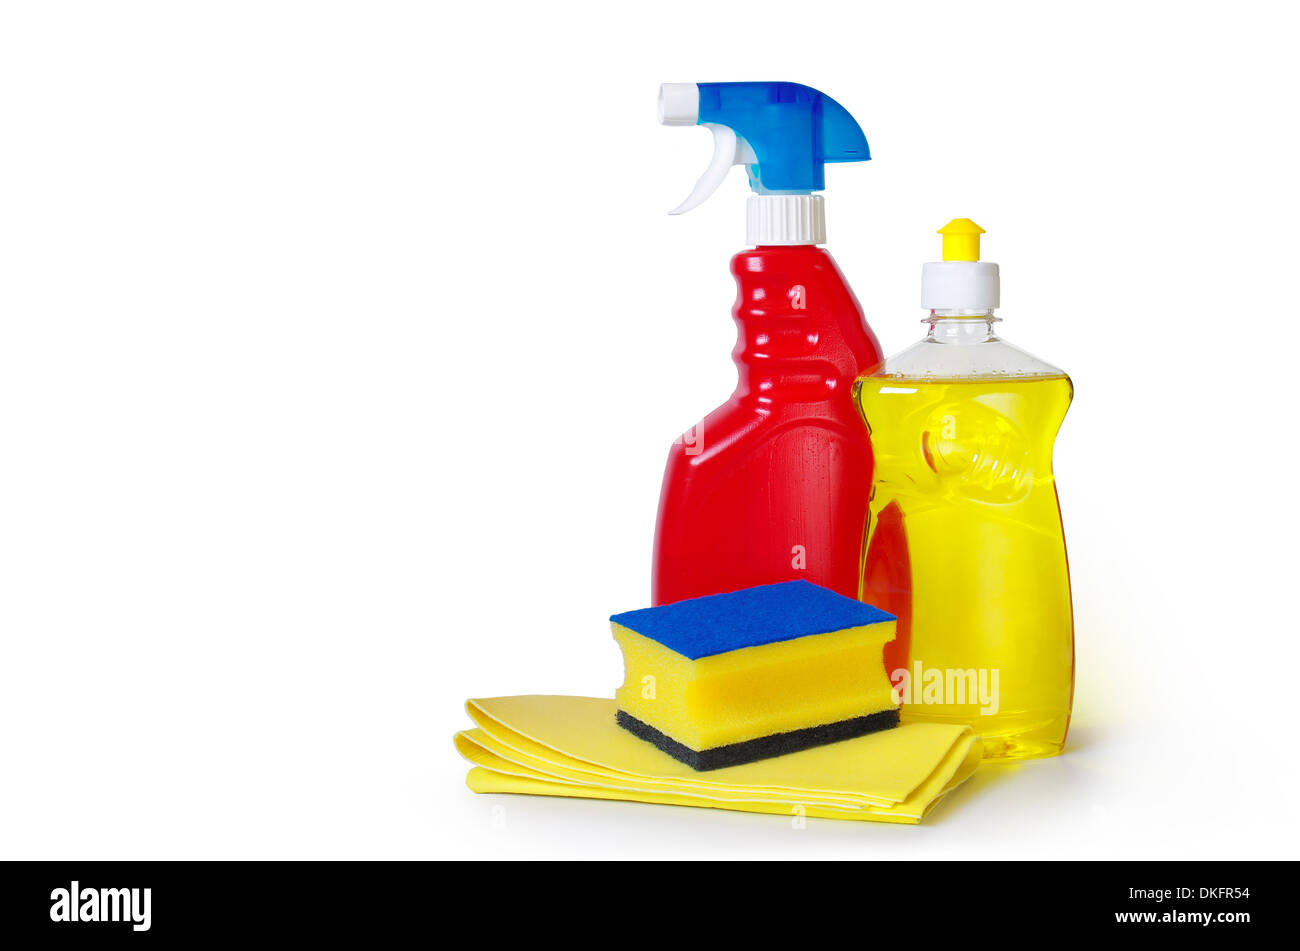 dish washing detergent, sponge an cloth over white background - Stock Image